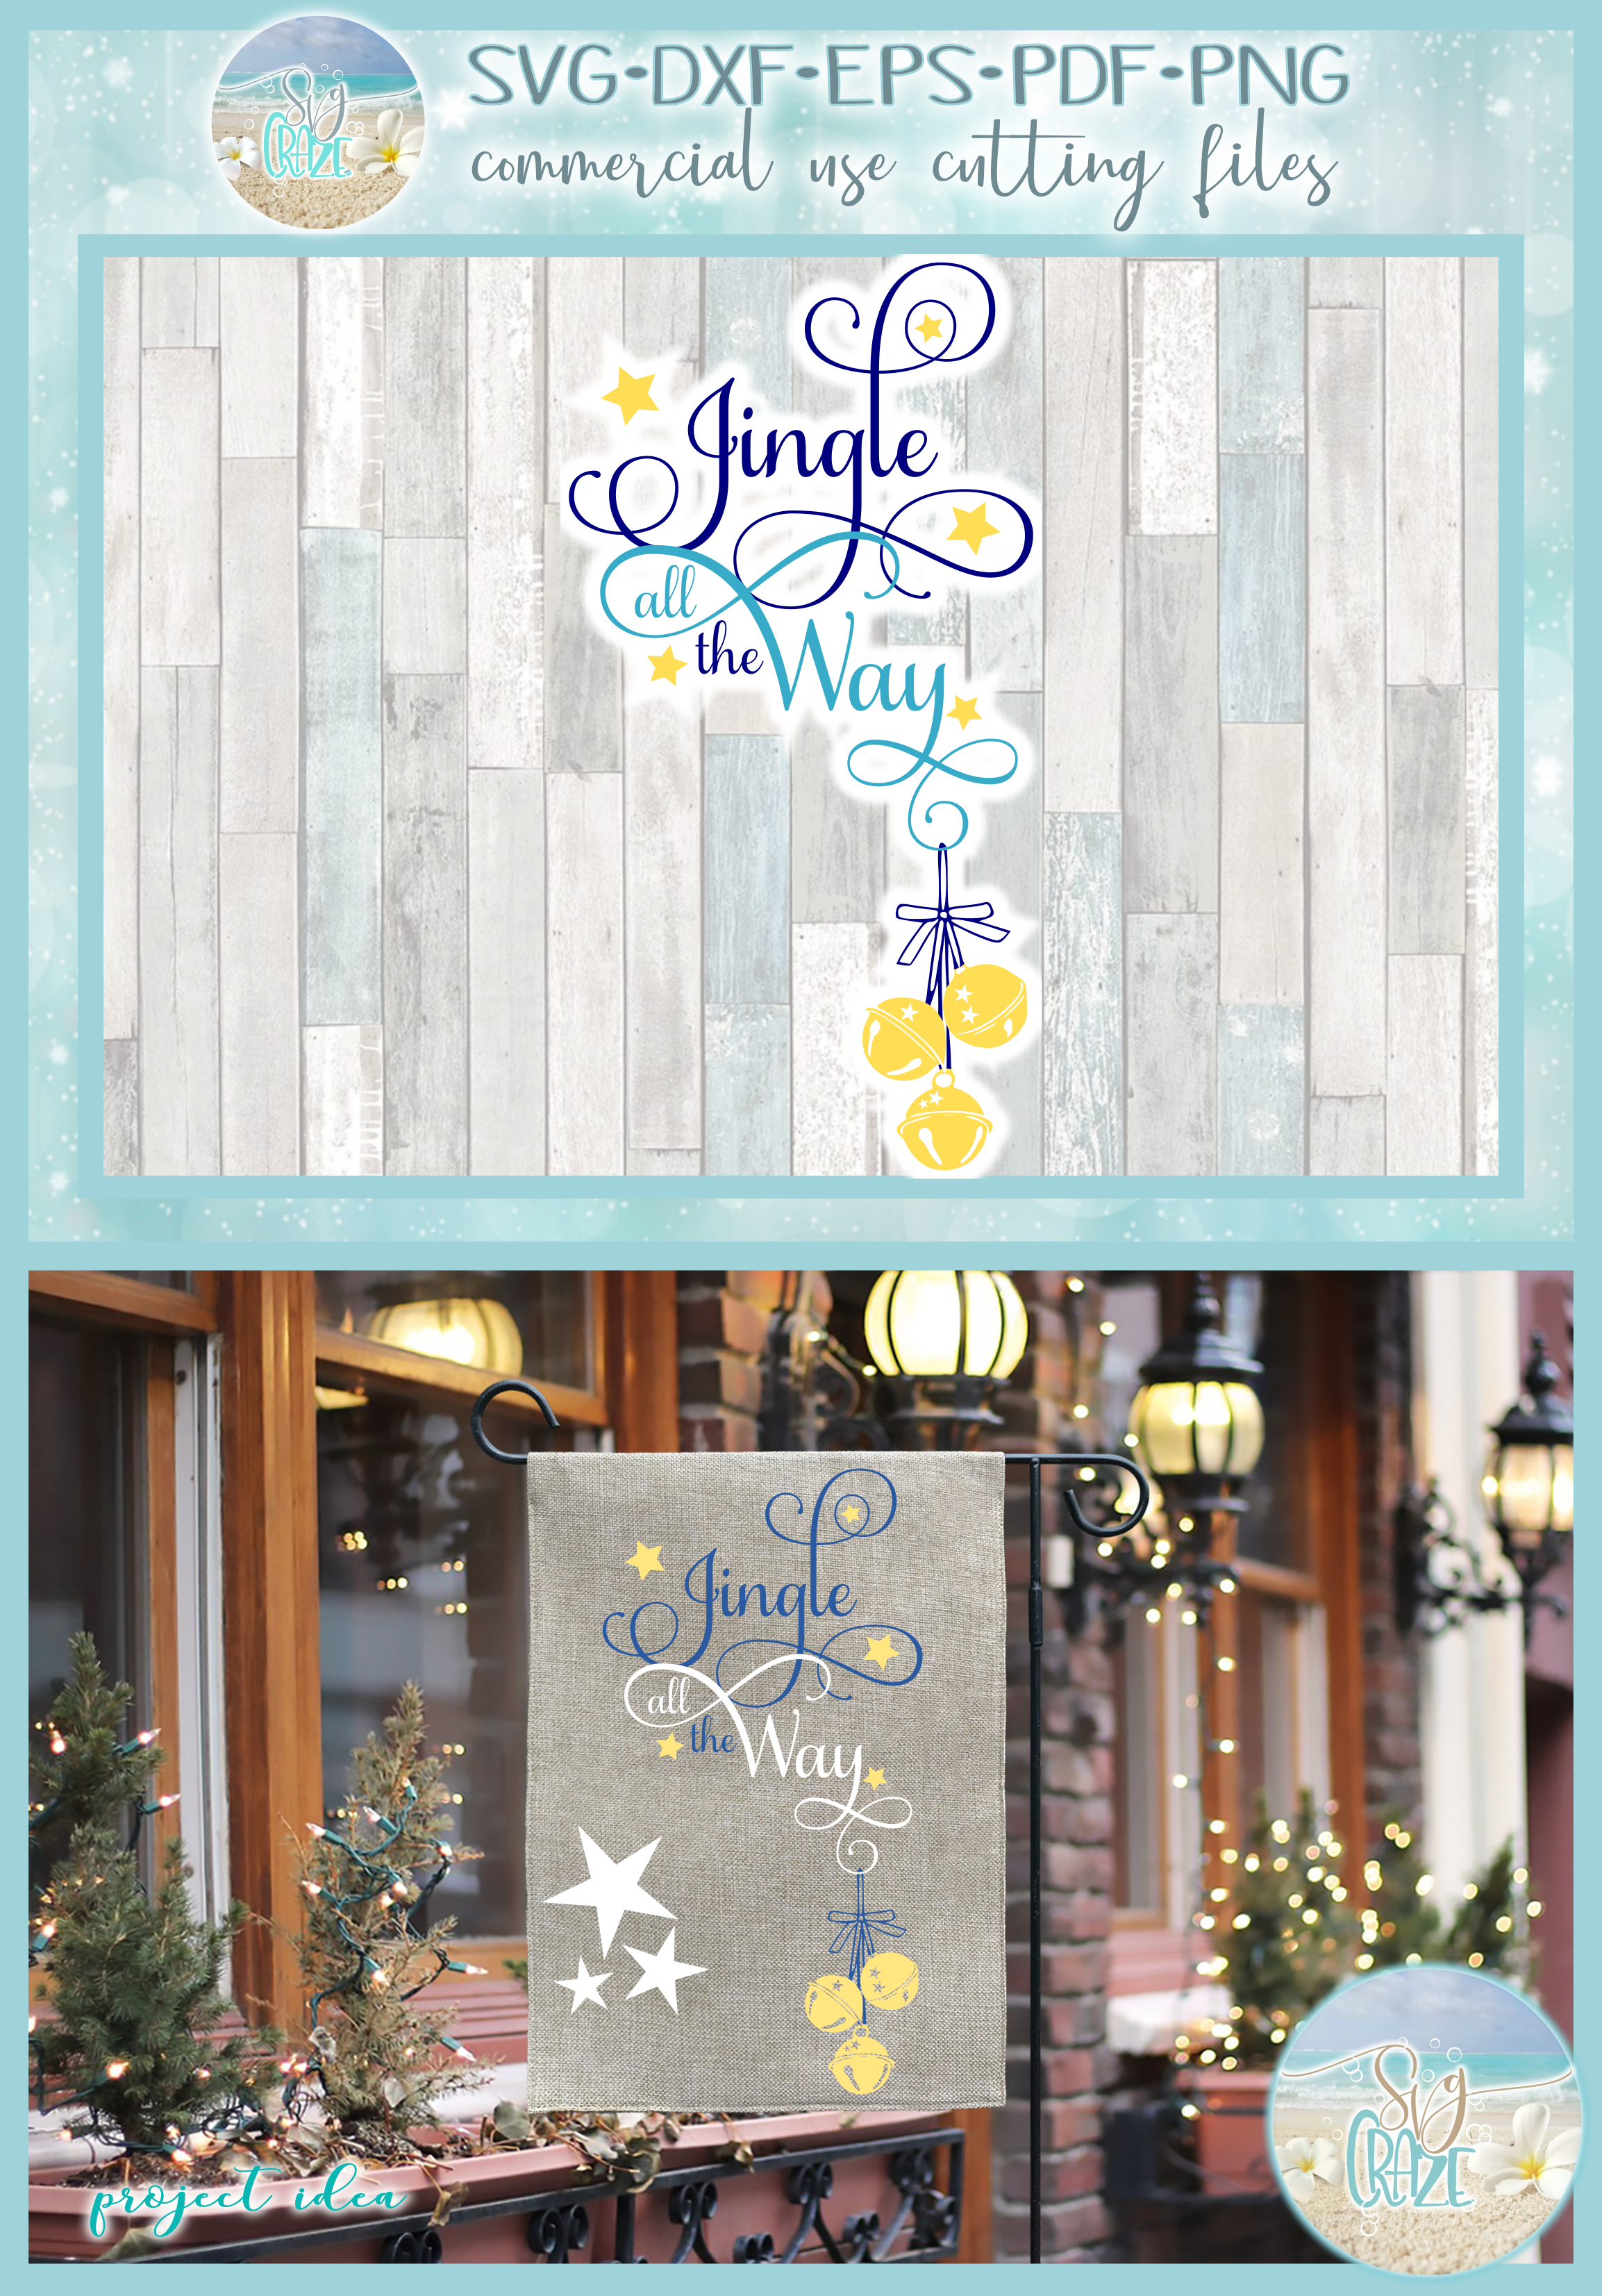 Jingle All The Way Christmas Holiday Quote SVG example image 5